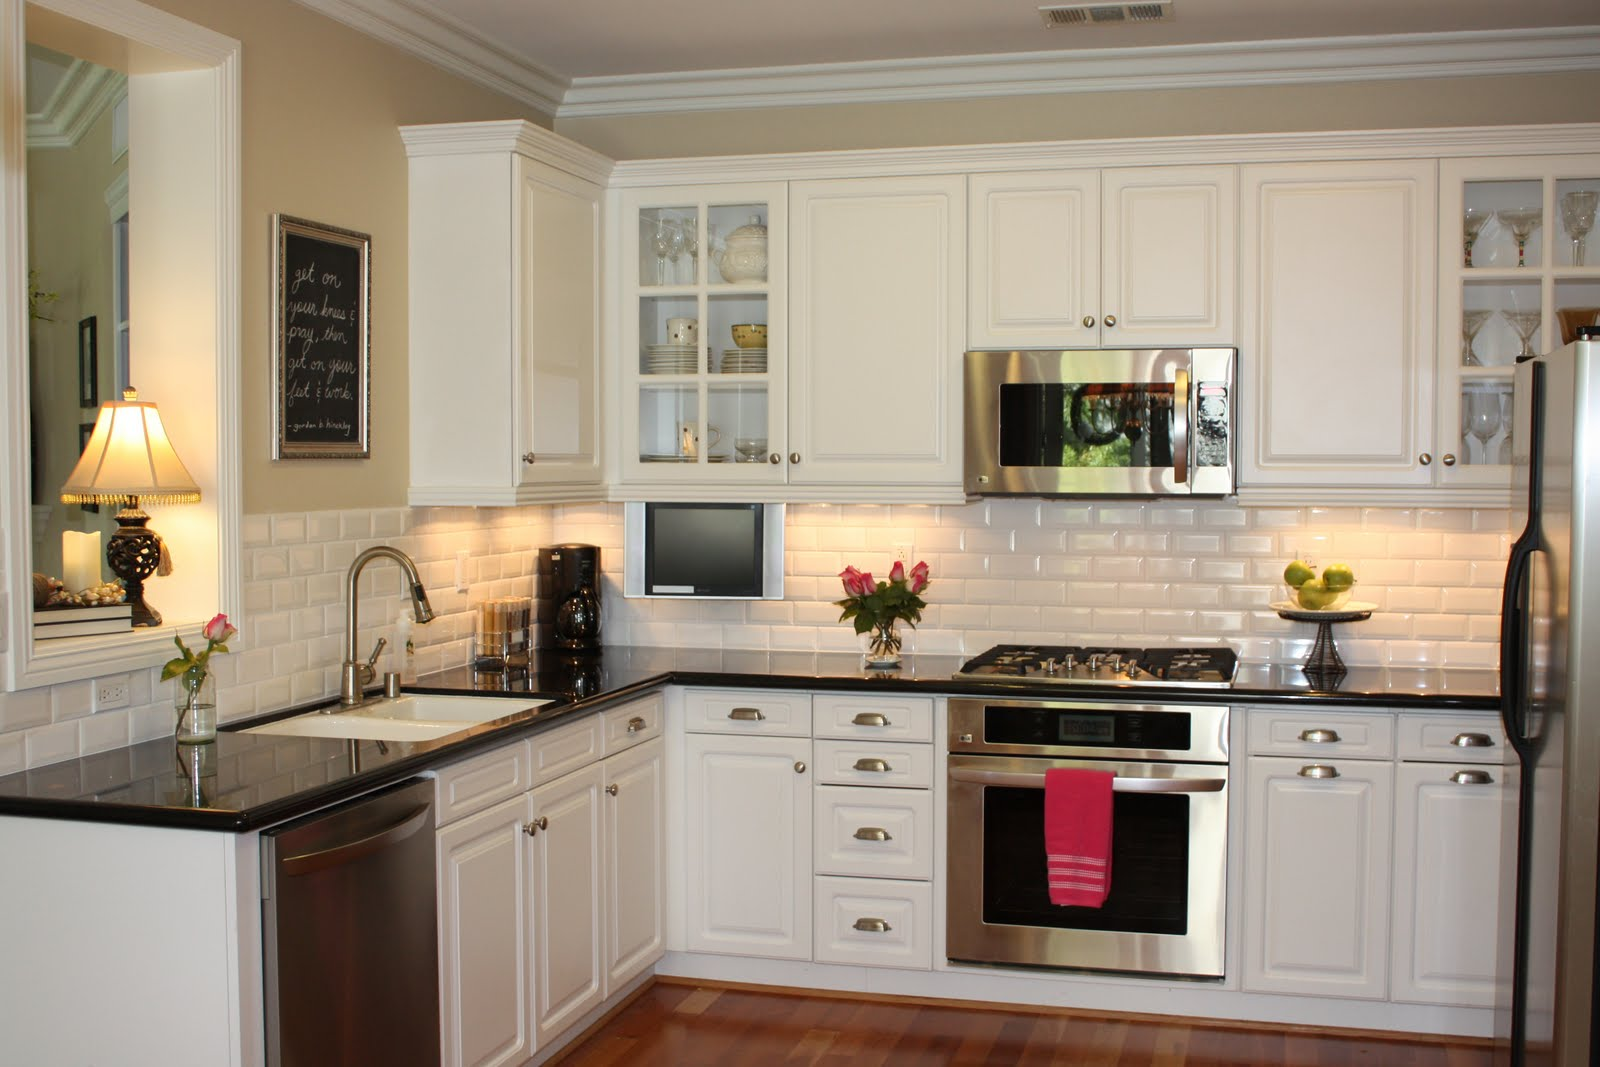 kitchen cabinets remodeling ideas photo - 4